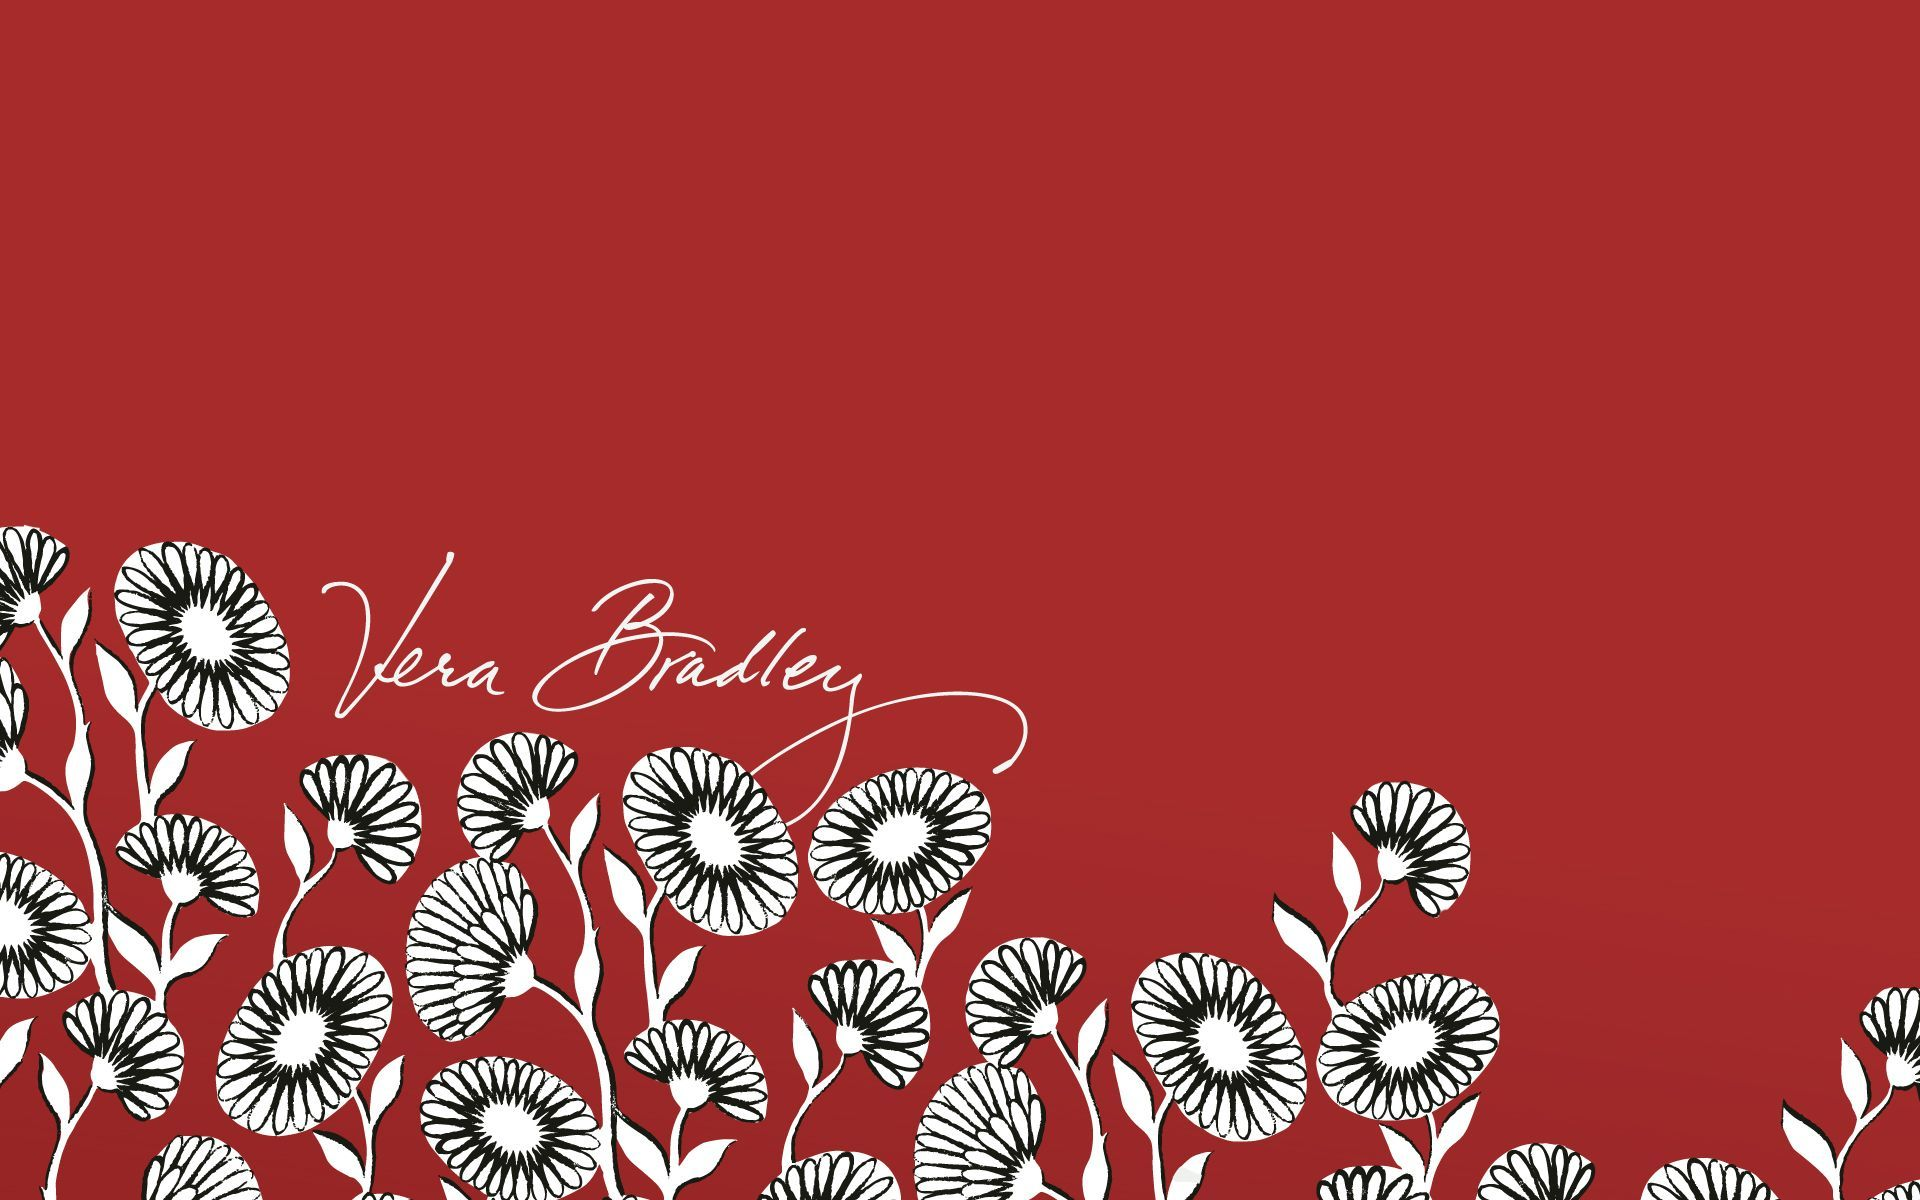 vera bradley deco daisy desktop wallpaper